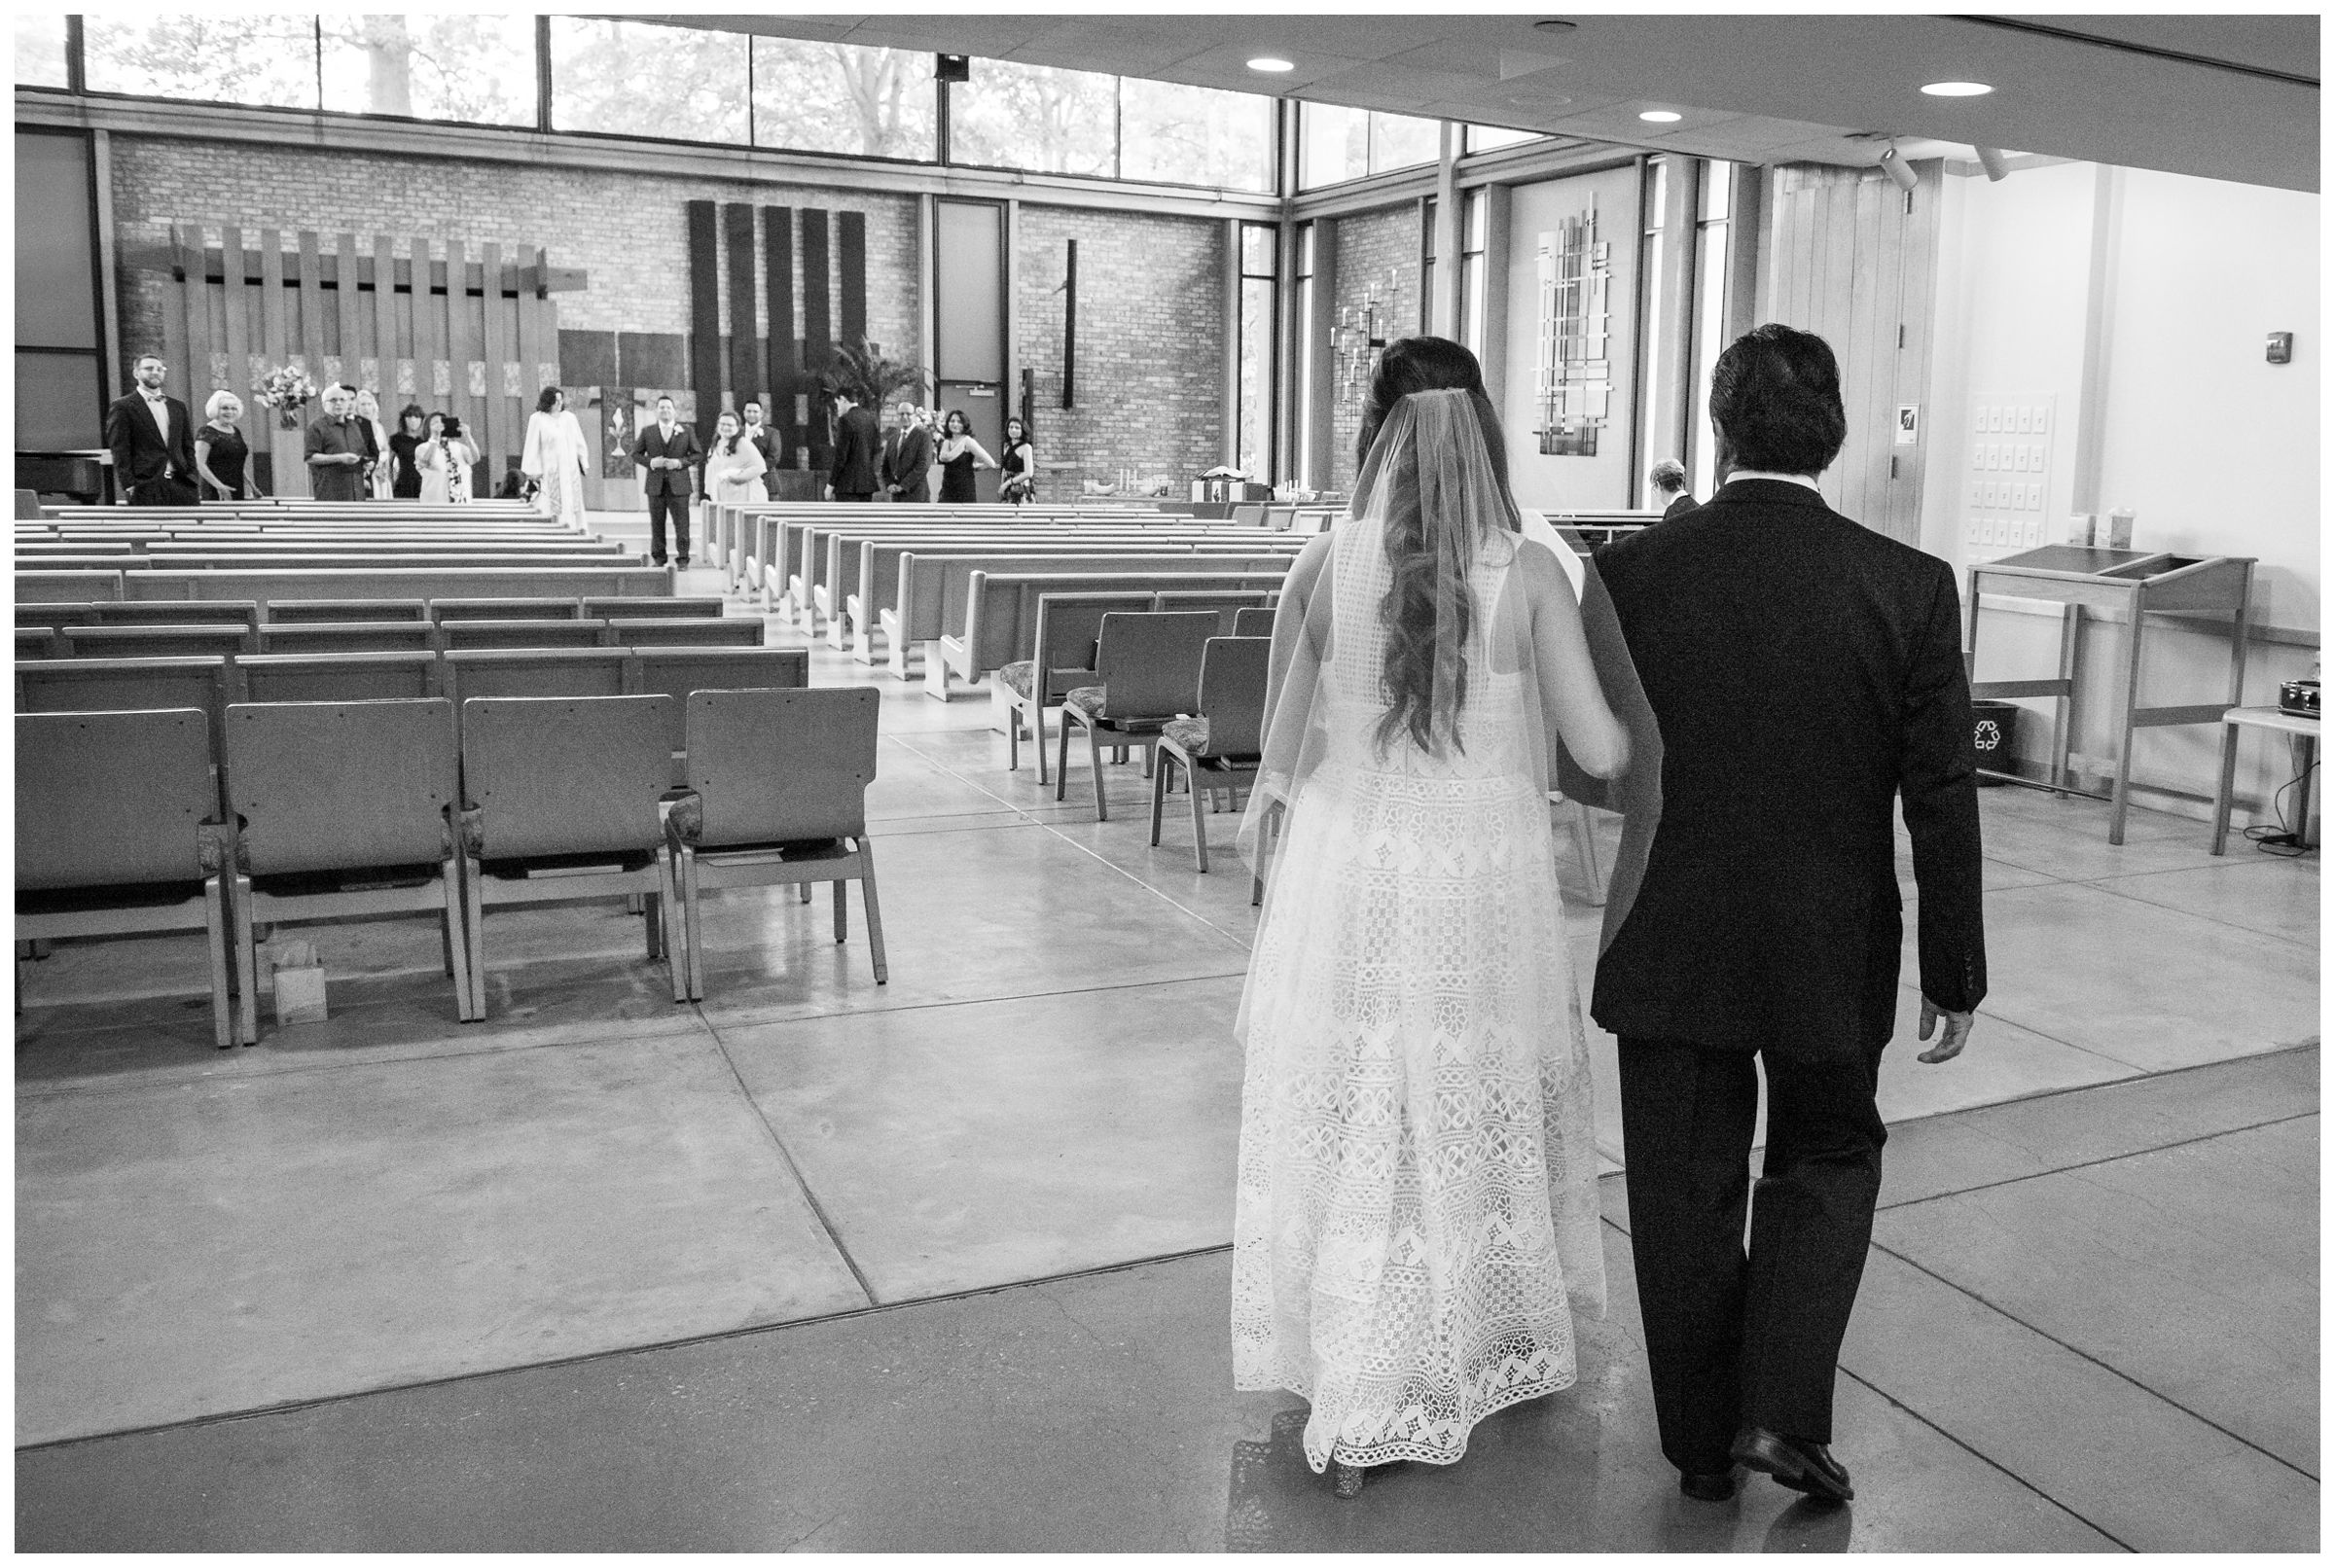 bride and father processional during wedding ceremony at the Unitarian Universalist Church in Arlington, Virginia